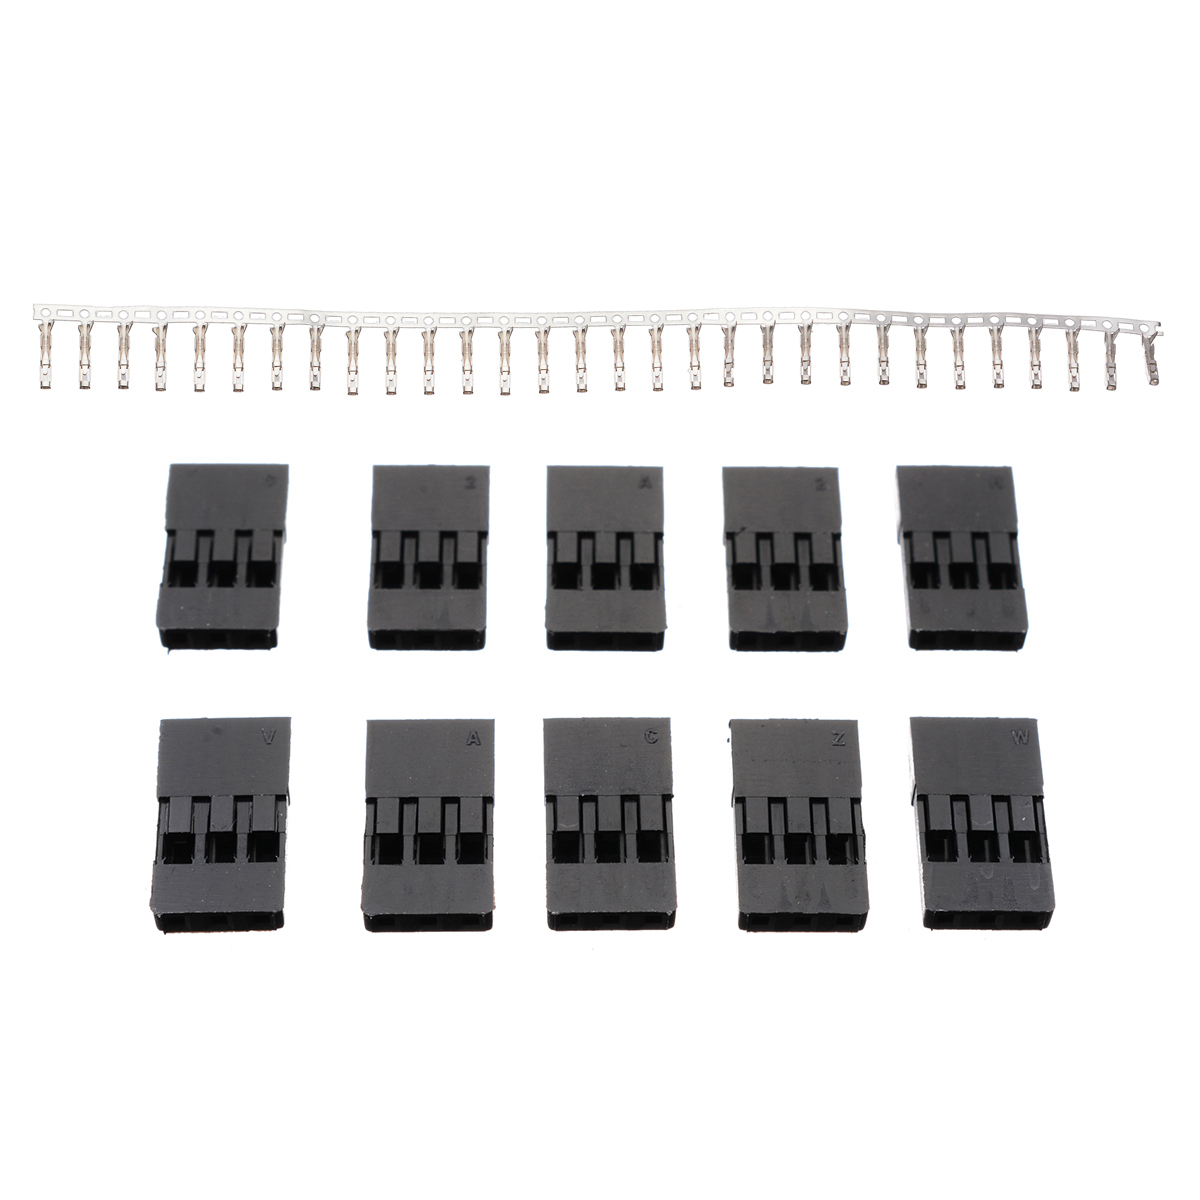 New 30pcs Male & Female Gold Plated Terminal With 10 Rudder Plug Buckle Connector For RC Car Model Servo Connector